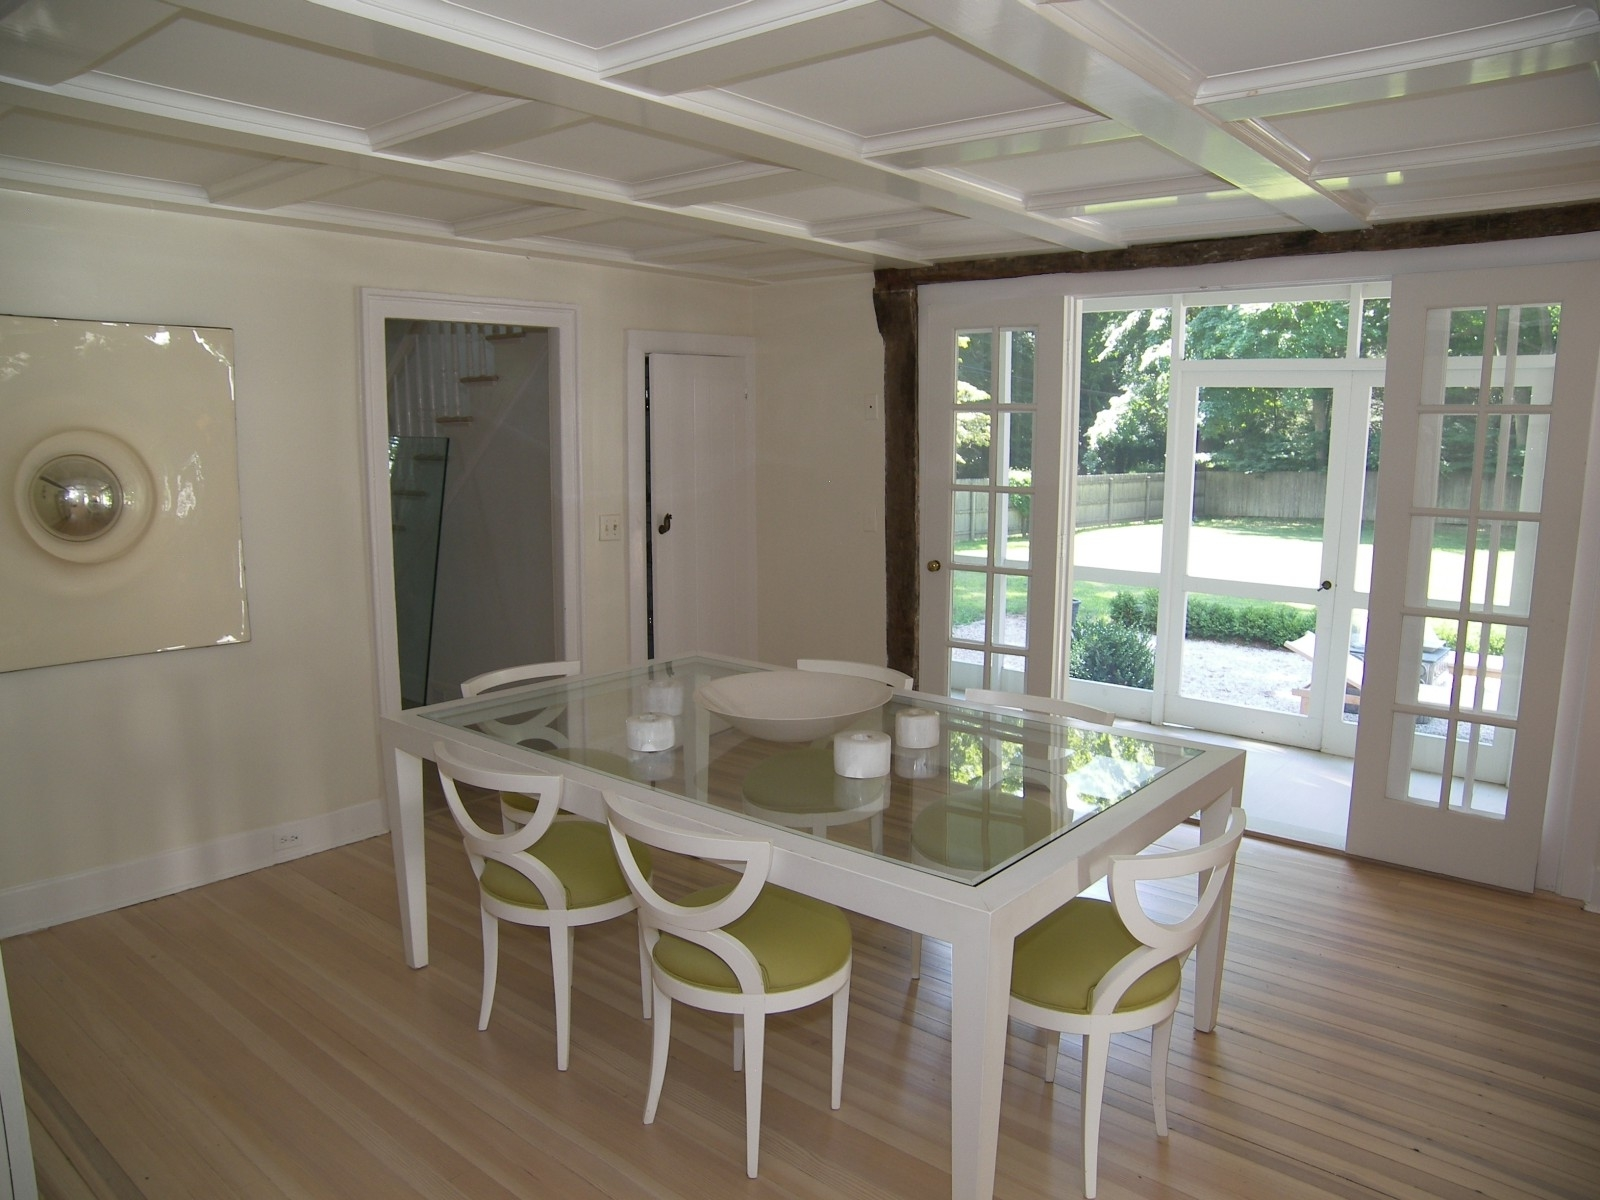 french door for dining room 8334 house decoration ideas. Black Bedroom Furniture Sets. Home Design Ideas